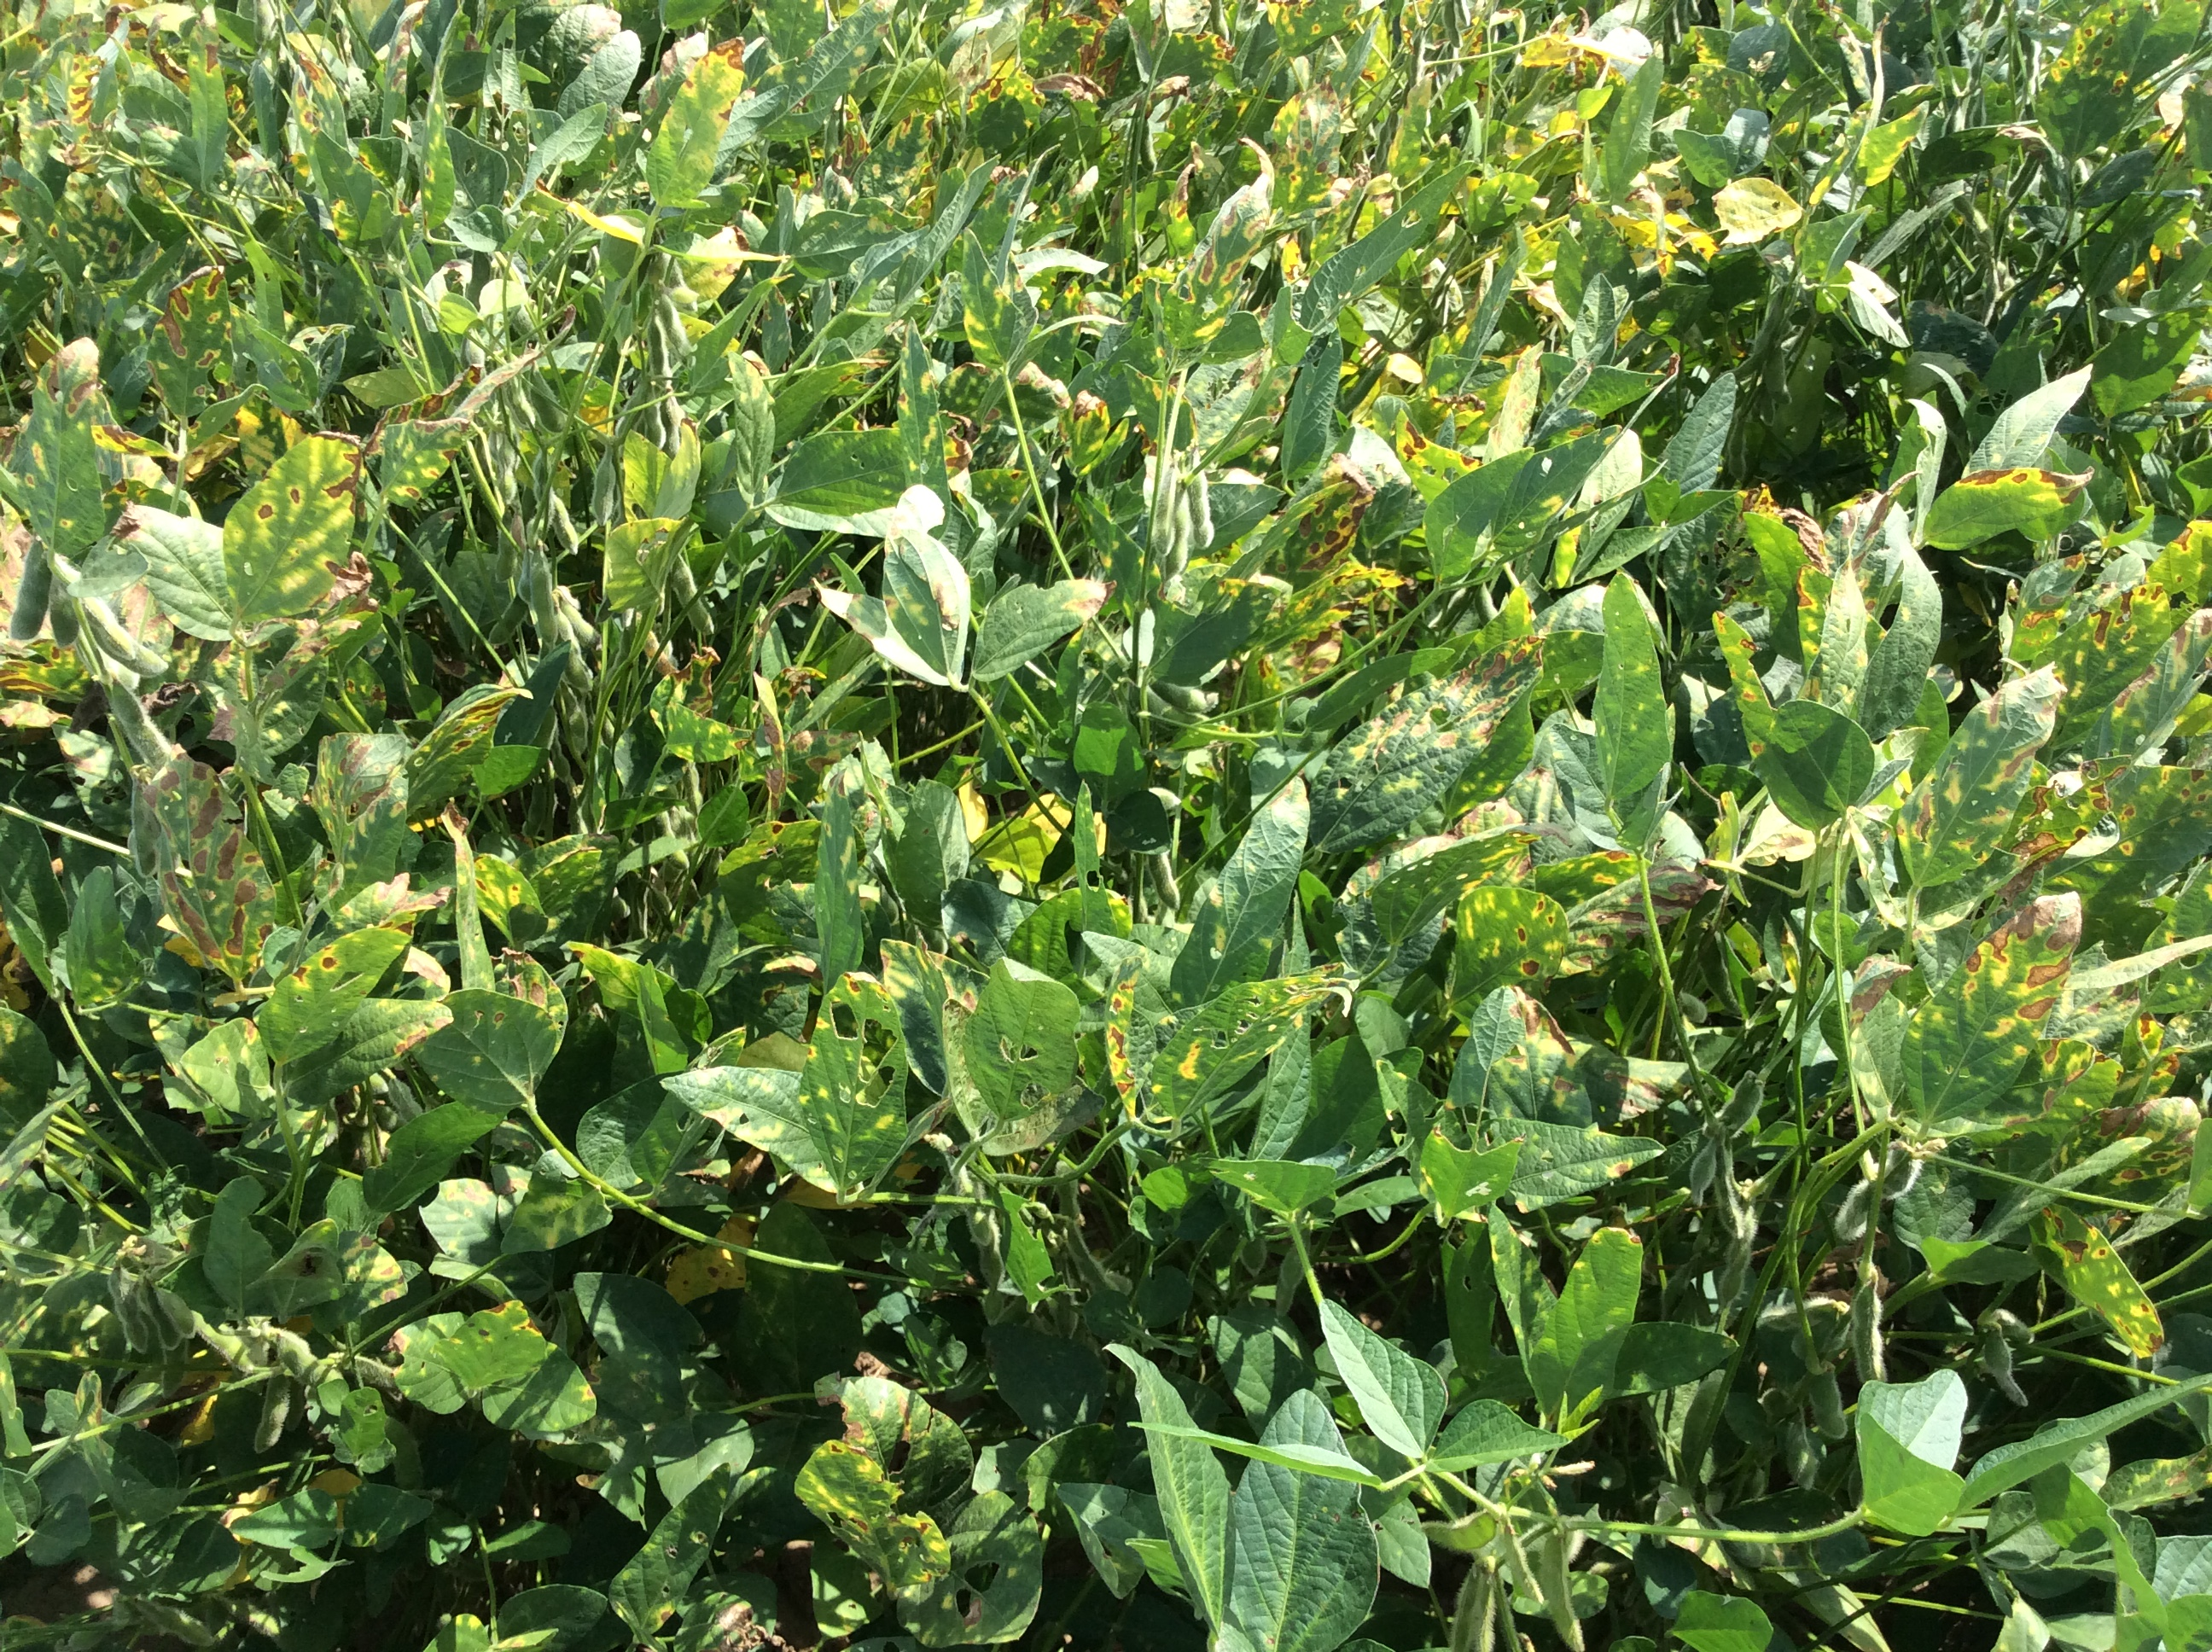 Sudden Death Syndrome SDS on Liberty Link Soybeans